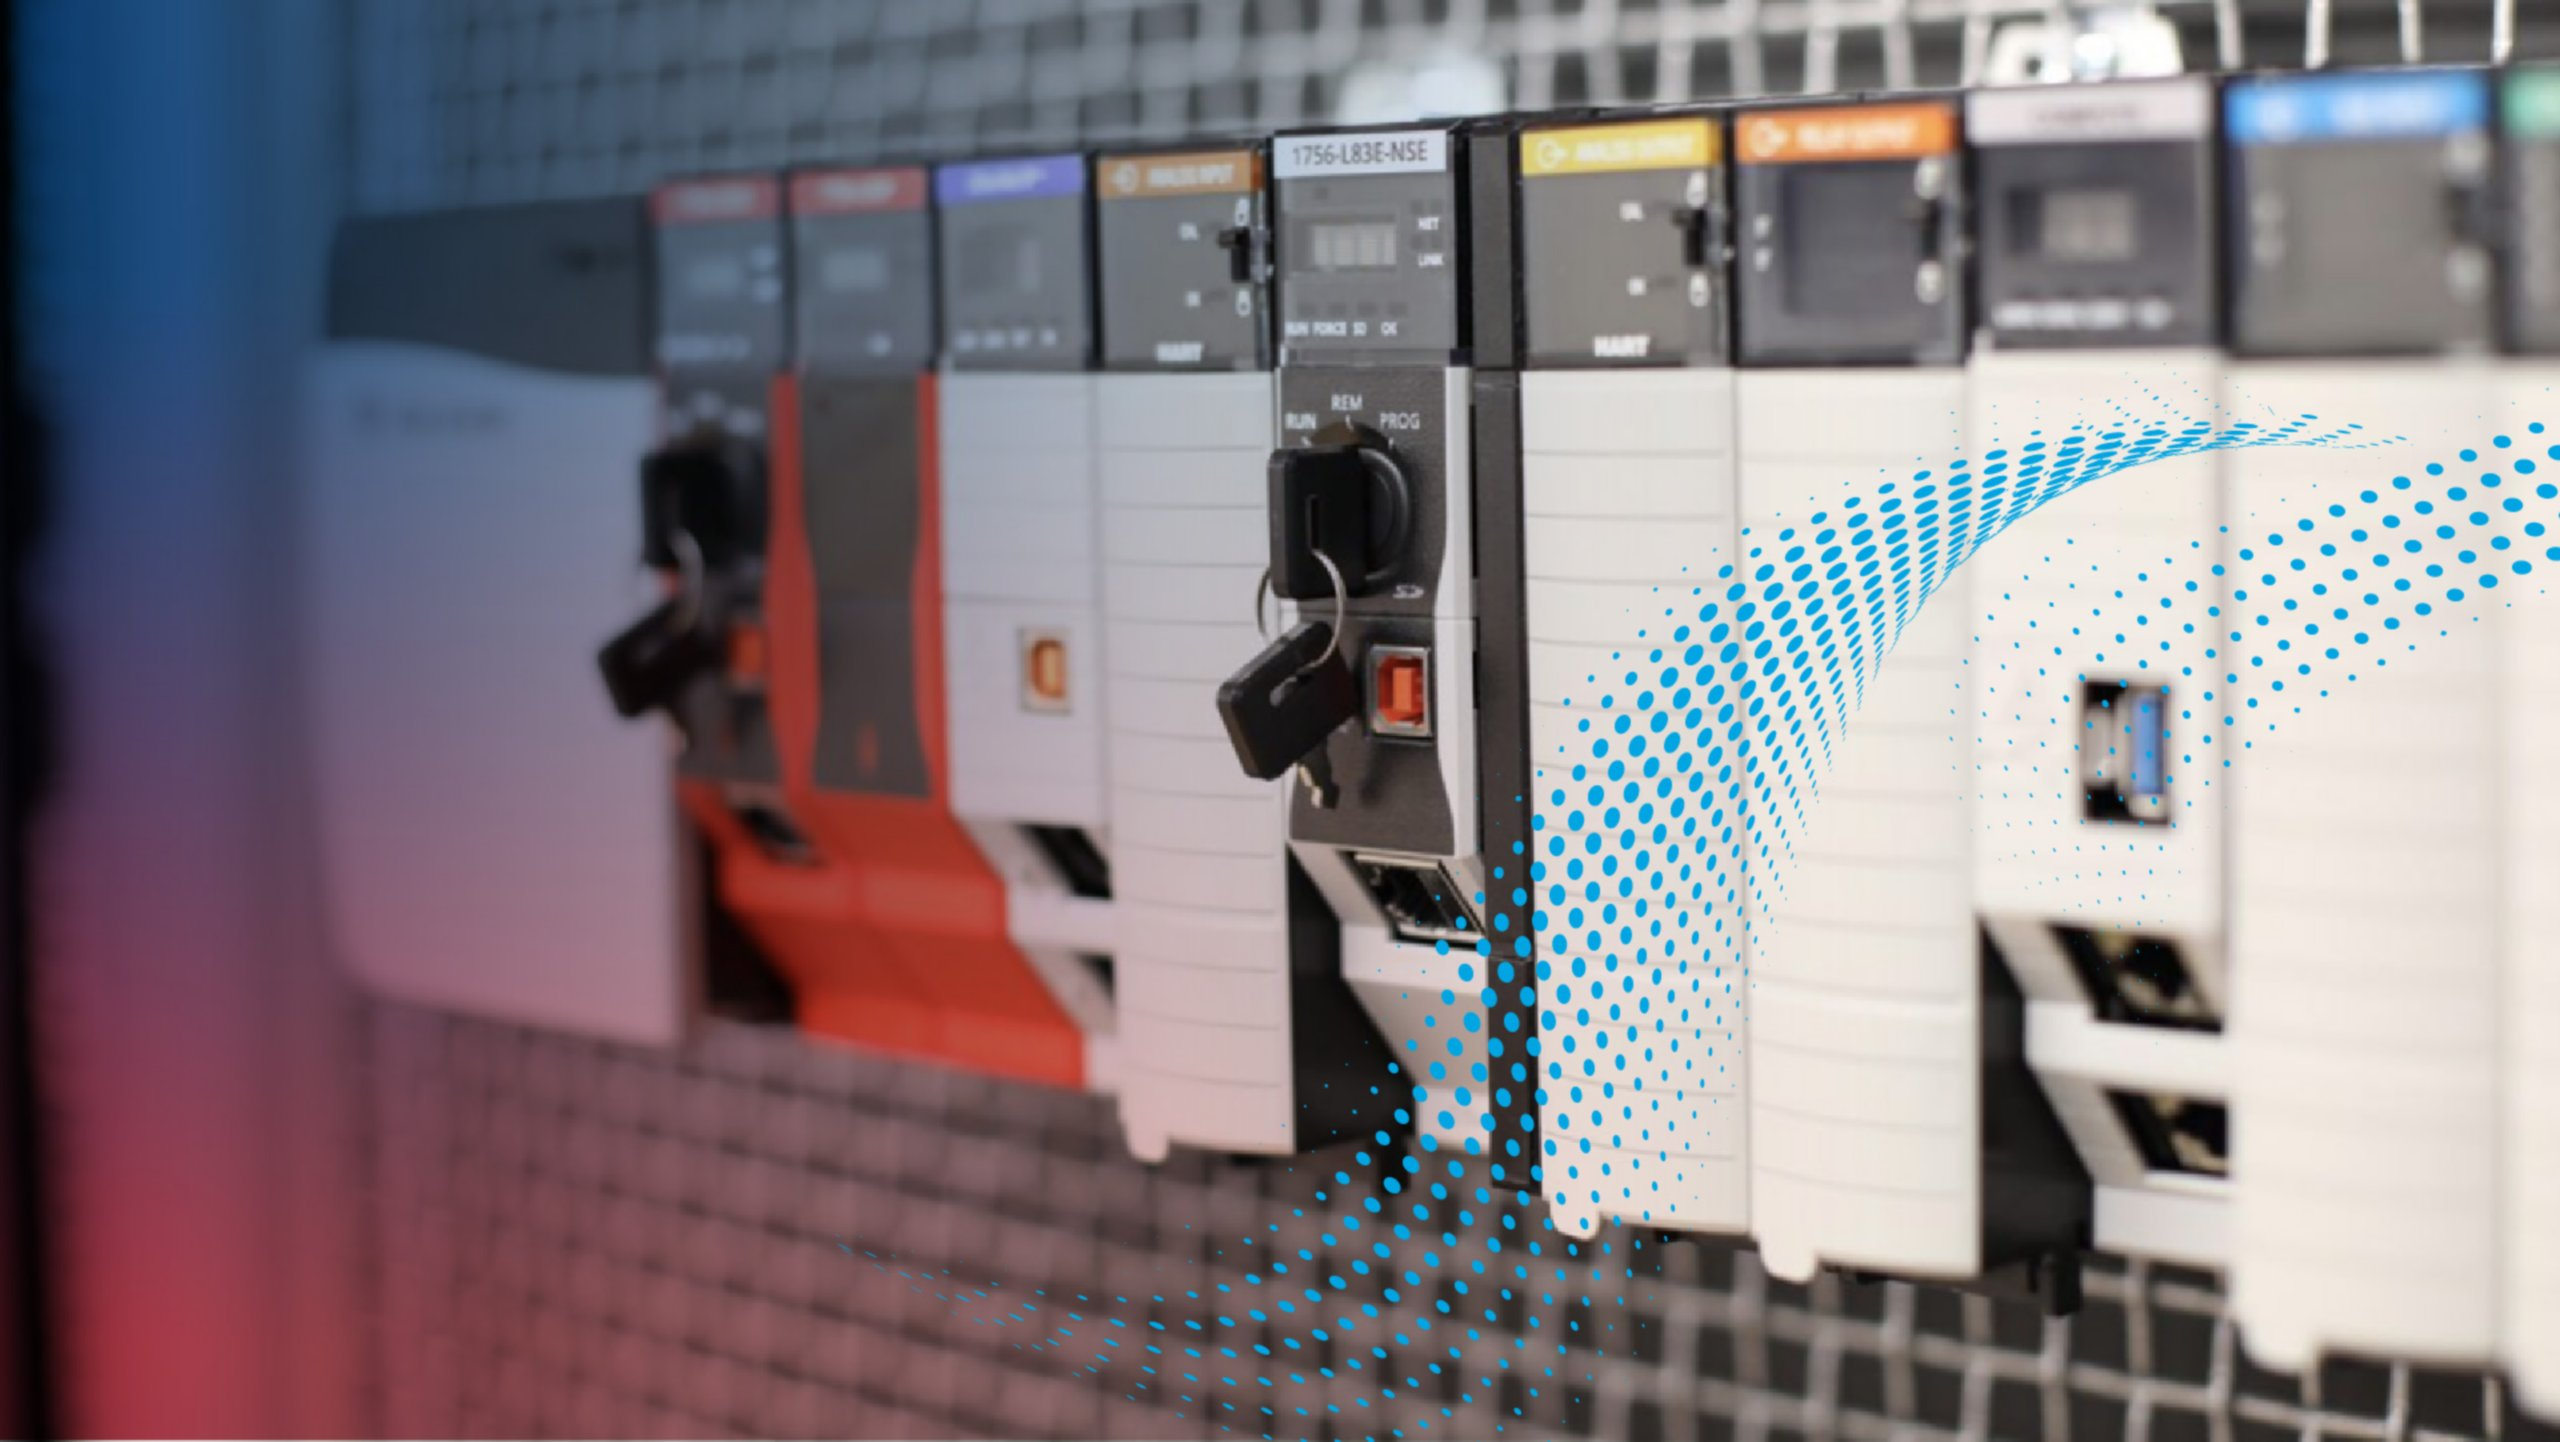 On demand smart machines sessions featured at Rockwell Automation events